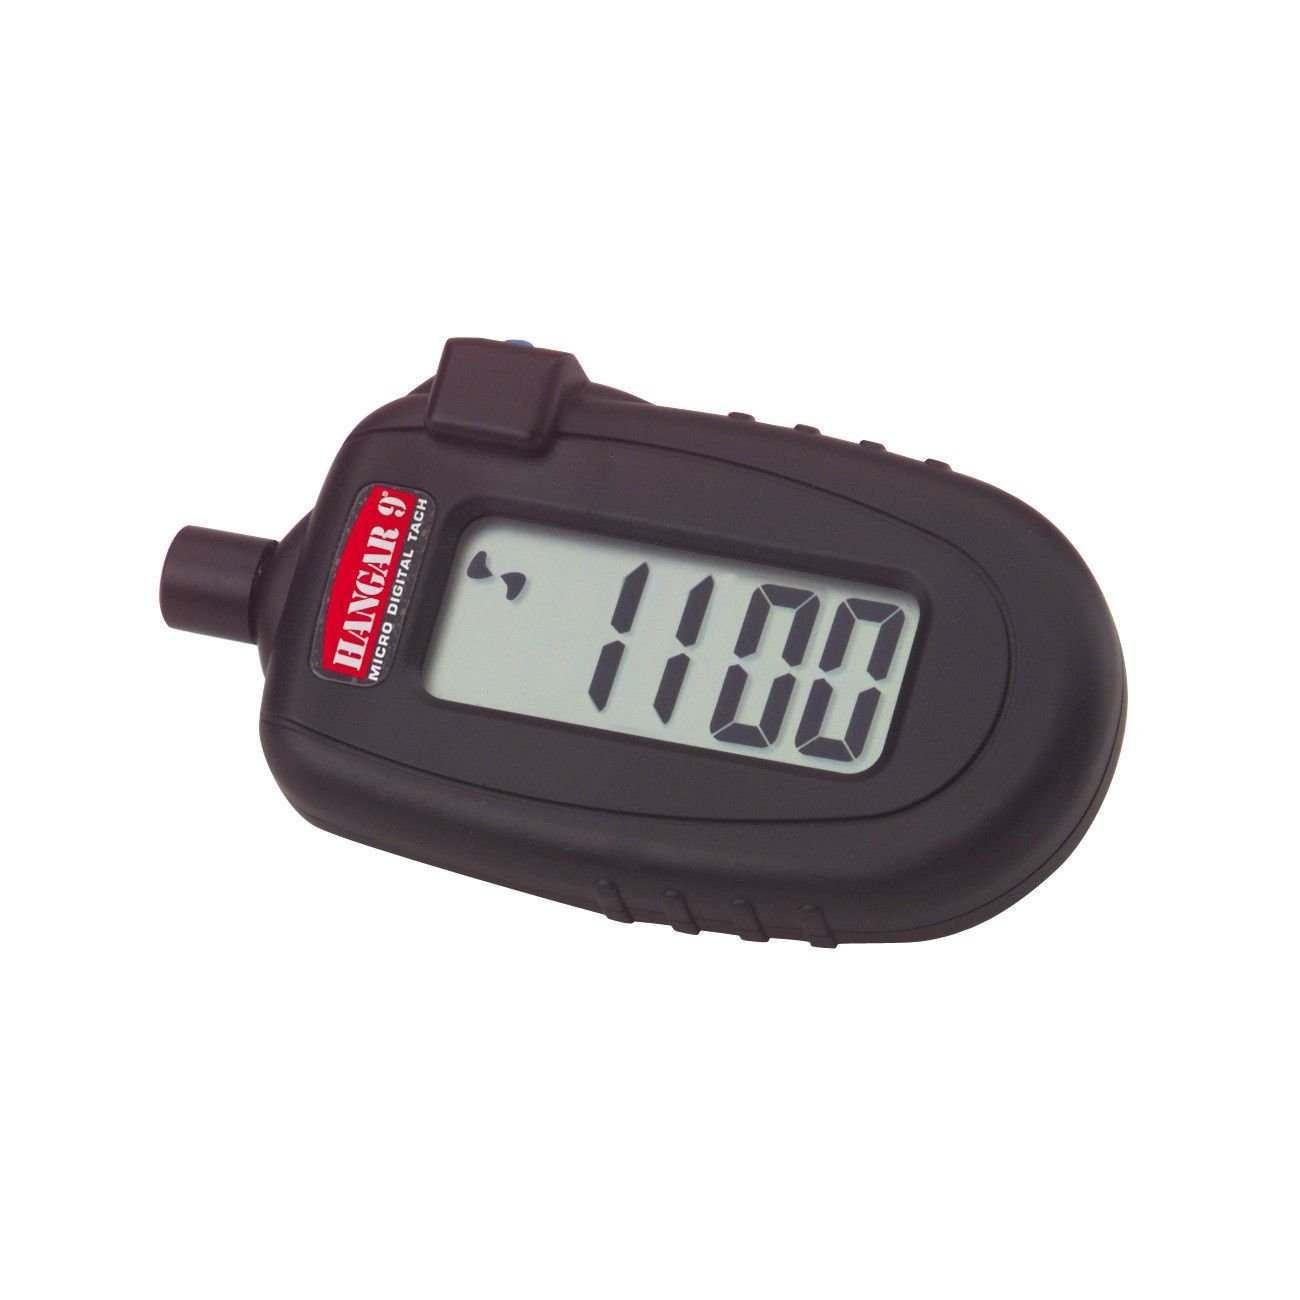 Best Rated In Automotive Replacement Tachometers Helpful Customer 1982 Ford F 150 Factory Tach Wiring Hangar 9 Micro Digital Tachometer Han156 Product Image